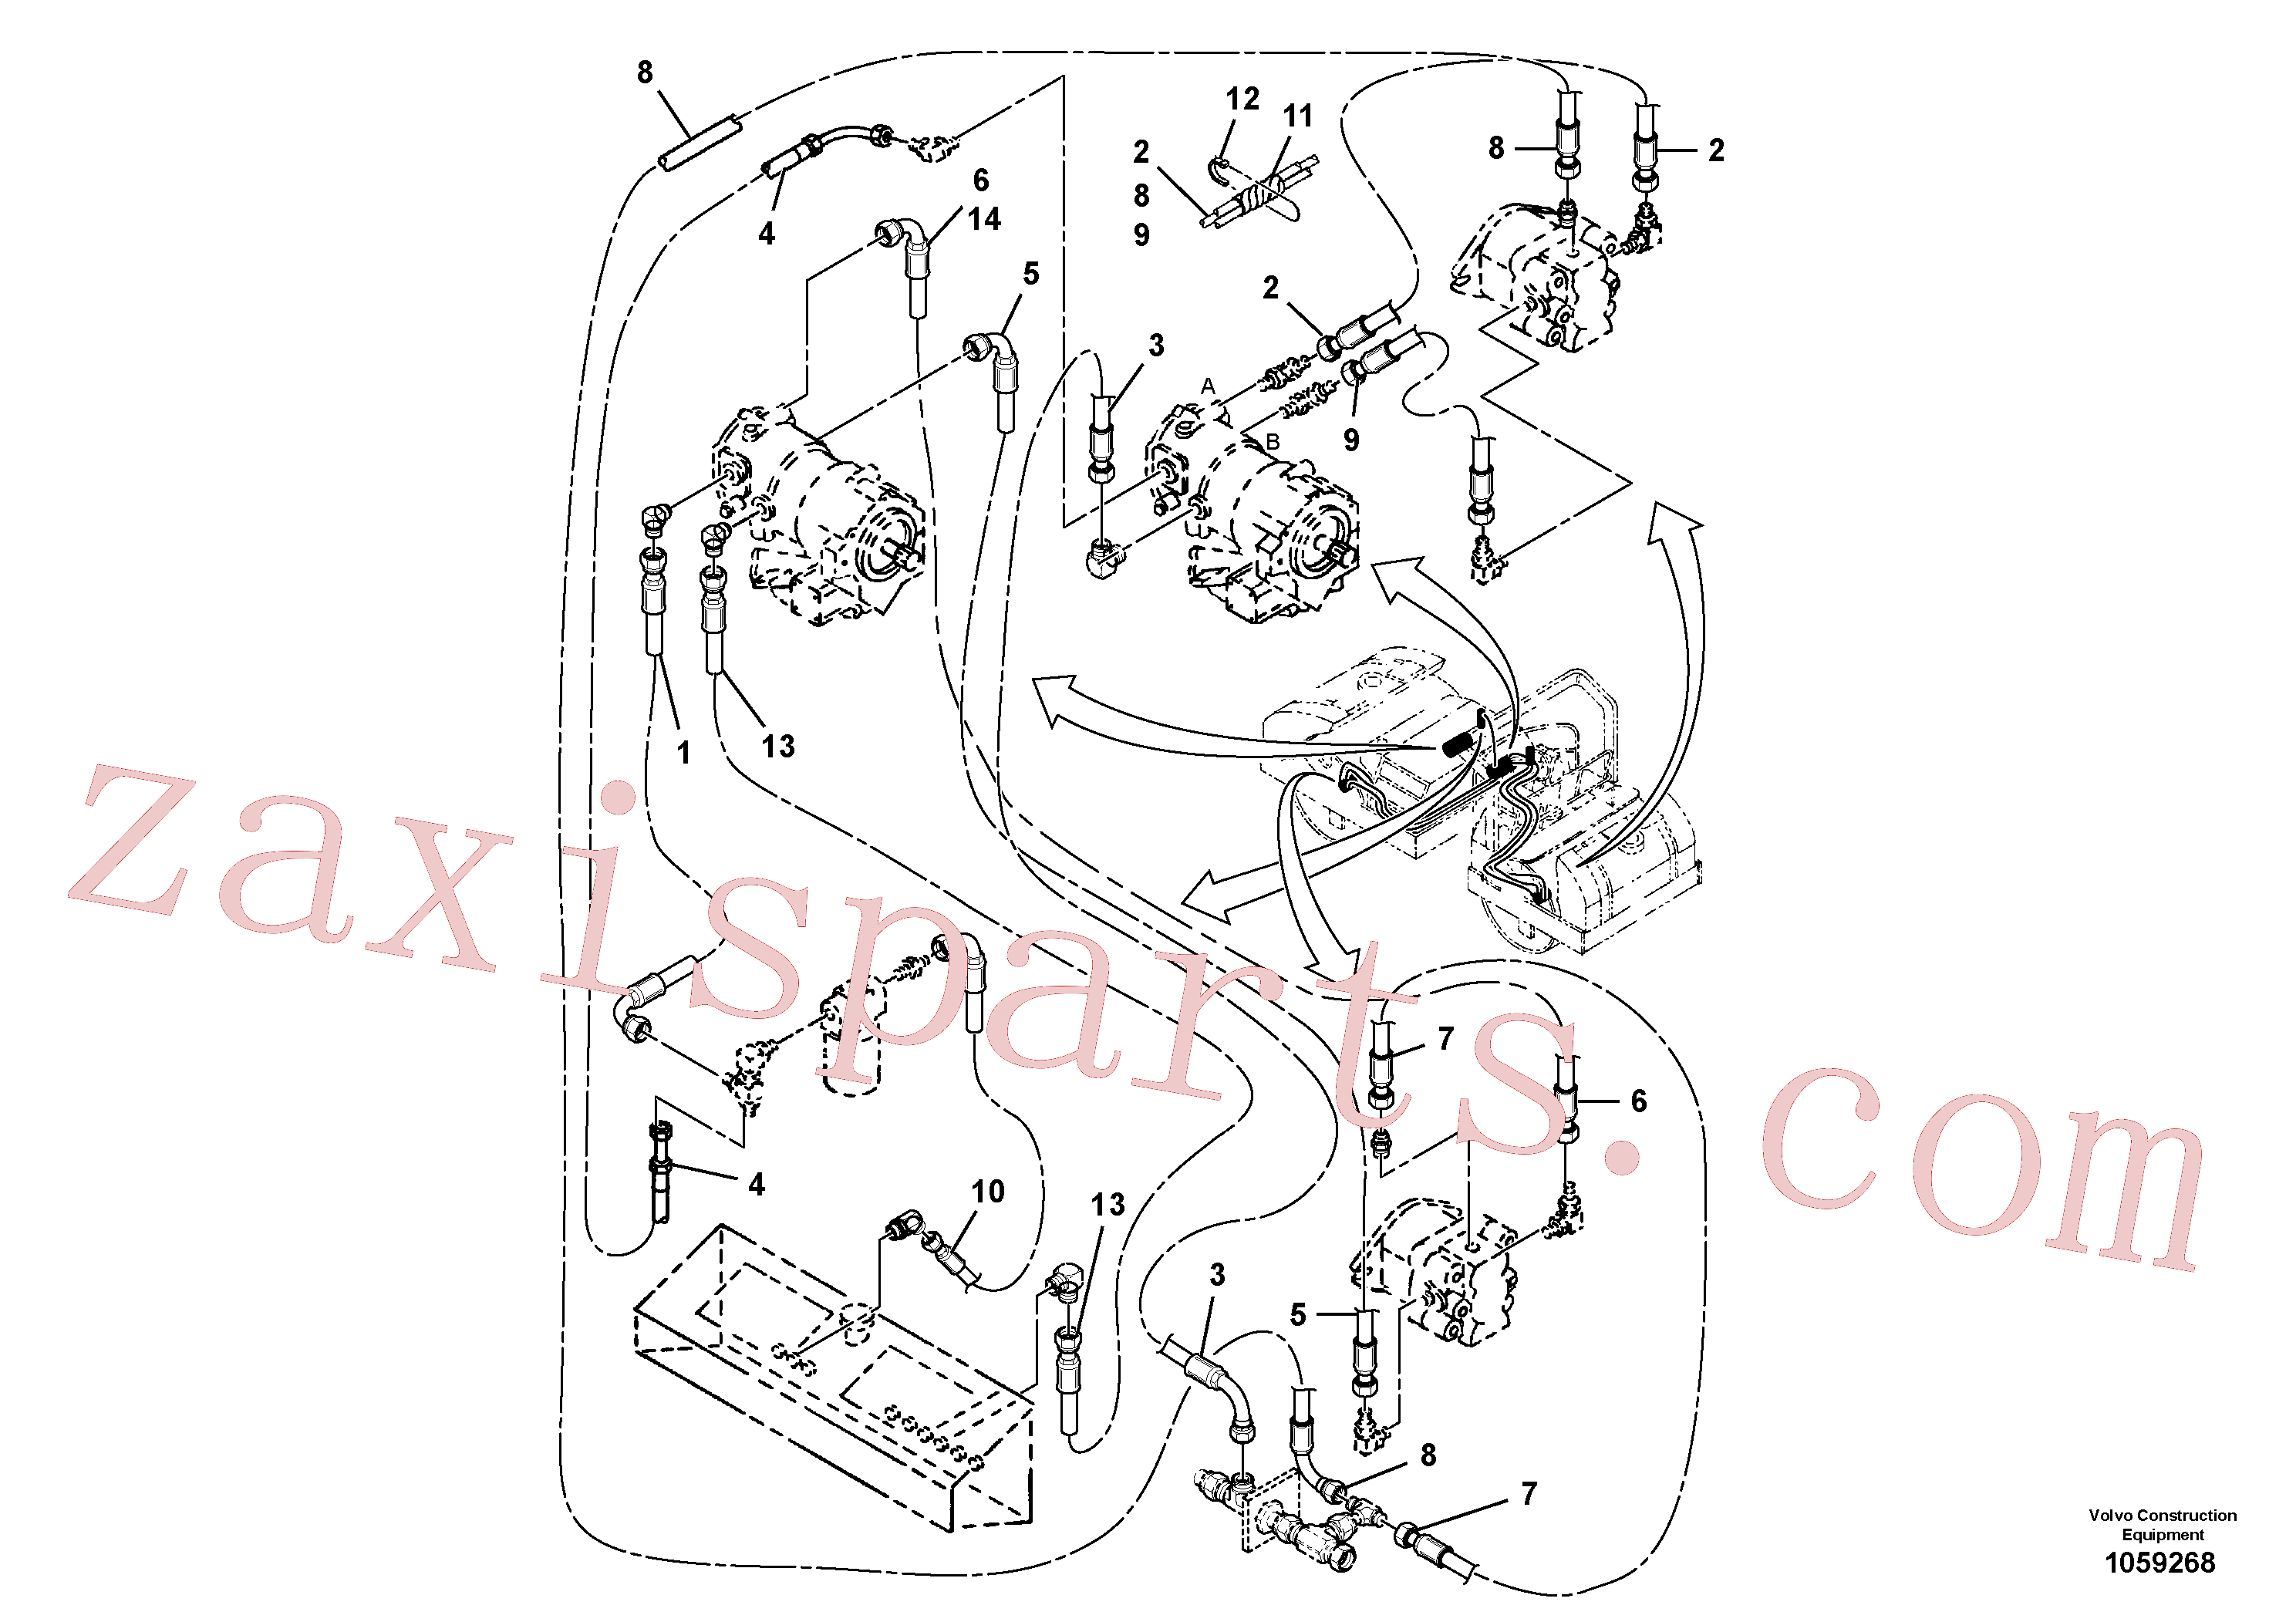 RM43901701 for Volvo Vibration Hoses Installation(1059268 assembly)